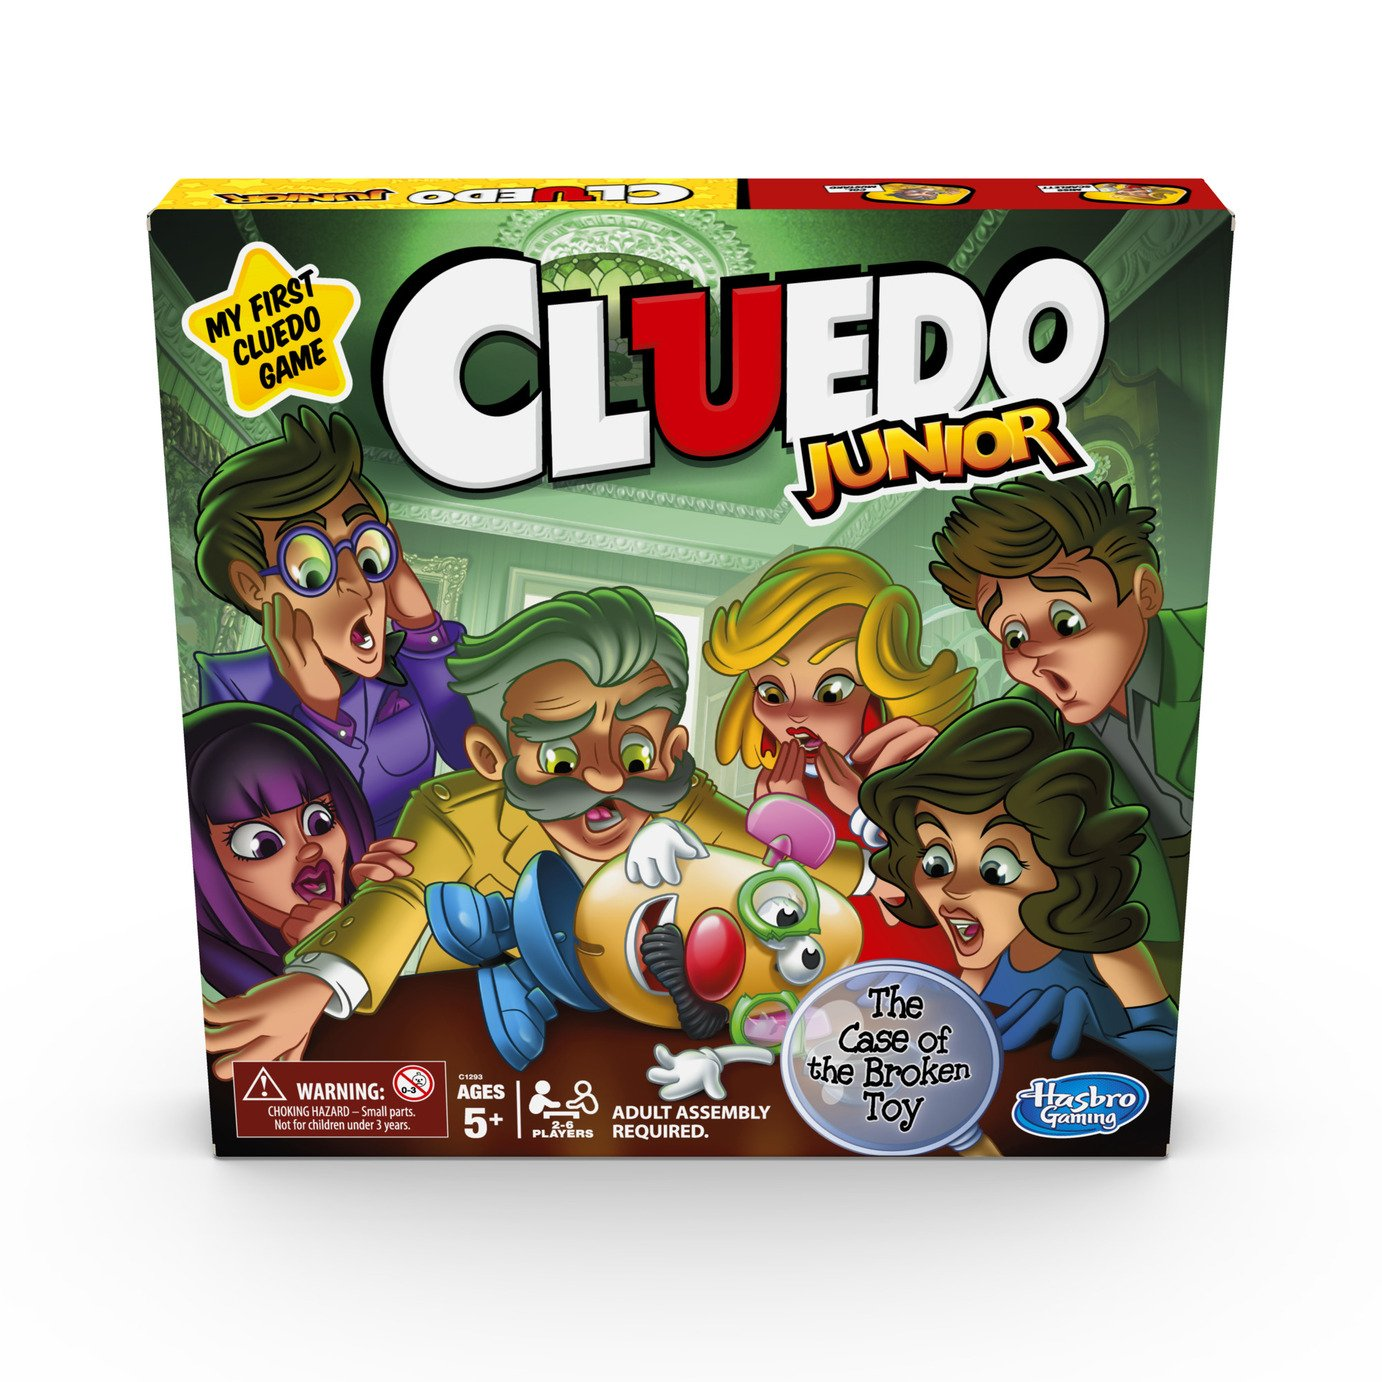 Image of Cluedo Junior Carnival Board Game from Hasbro Gaming.